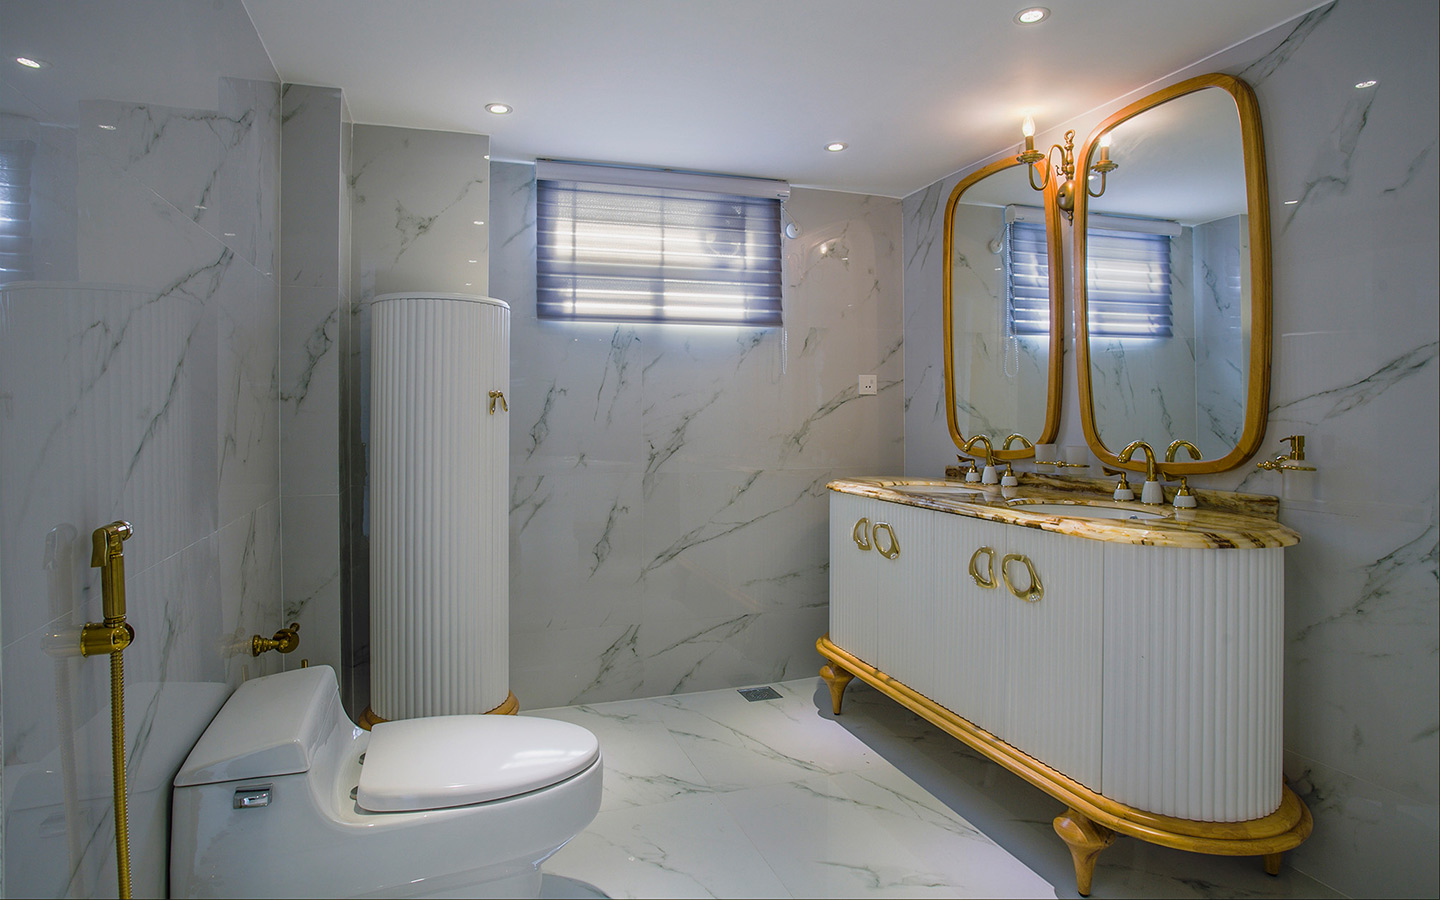 A nicely decorated washroom with proper ventilation